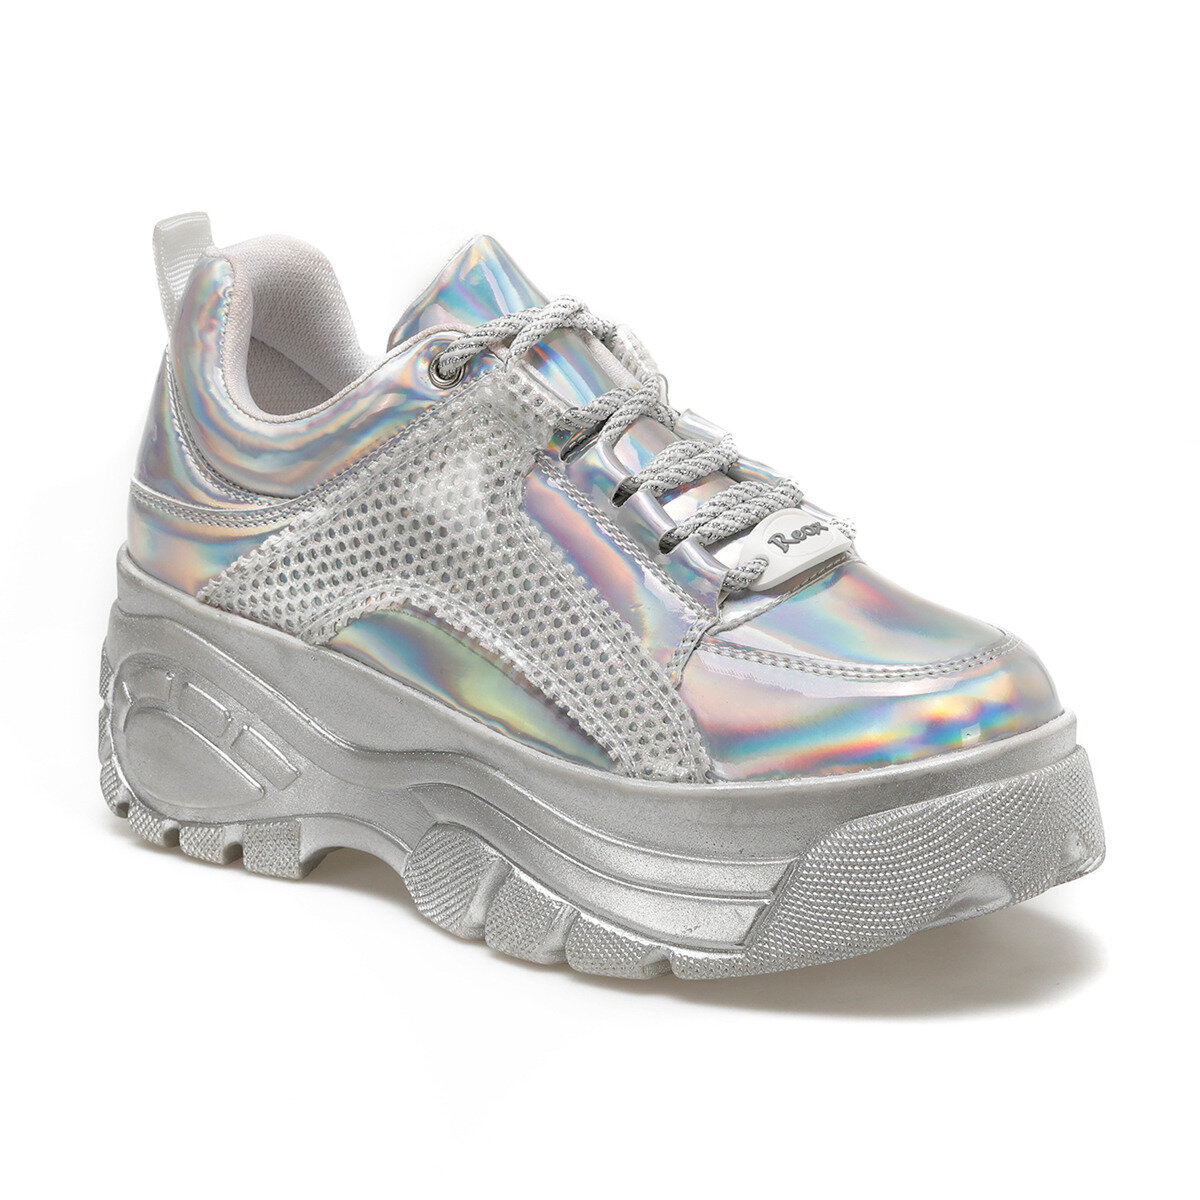 FLO 20S-499 Silver Women 'S Sneaker Shoes BUTIGO